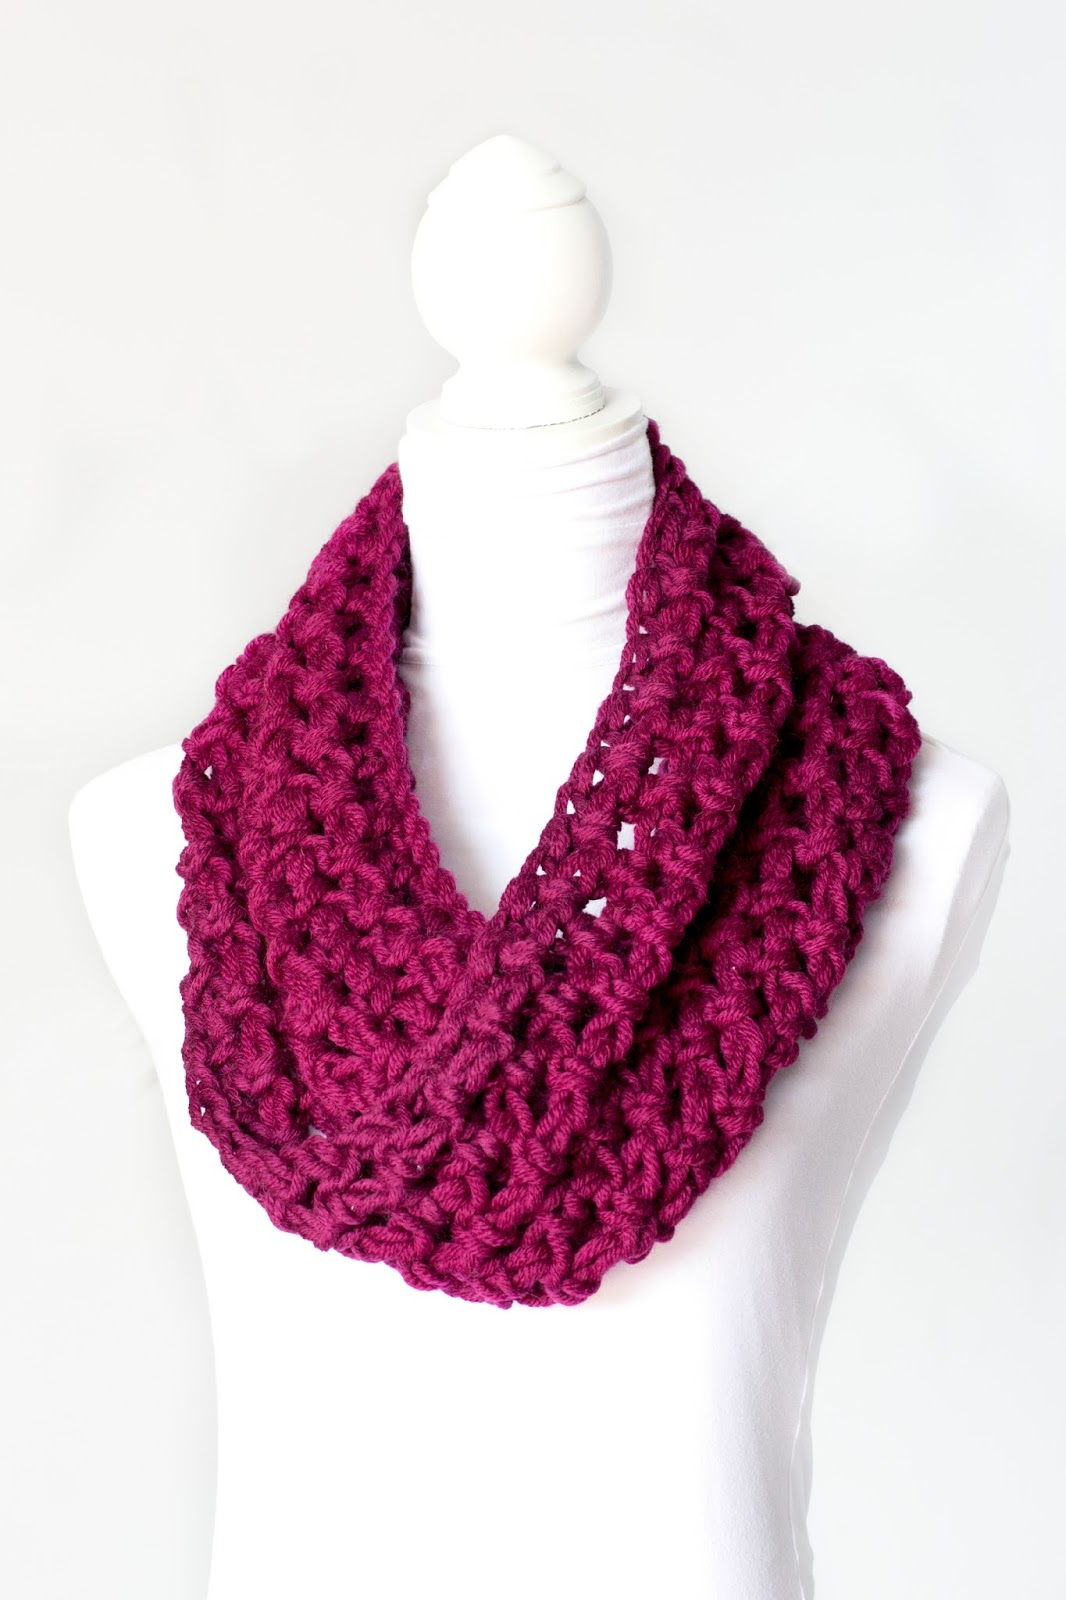 Free Crochet Scarf Patterns For Bulky Yarn : free crochet pattern bulky stacked shell cowl shrug ...